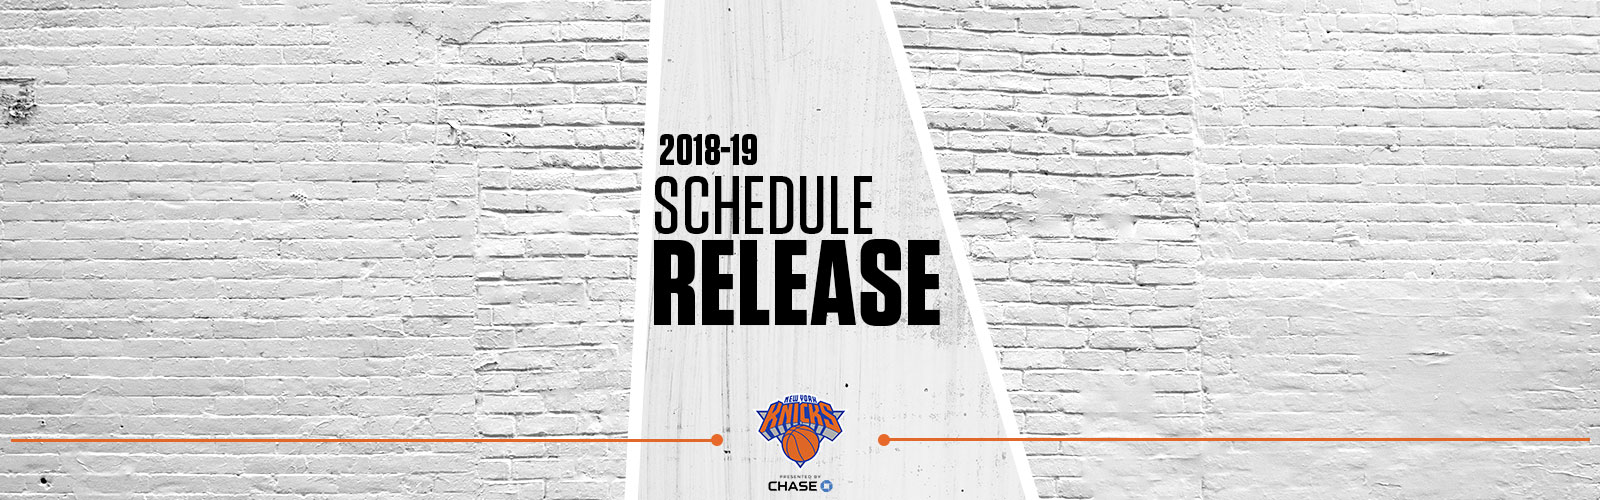 NEW YORK KNICKS 2018-19 SCHEDULE ANNOUNCED